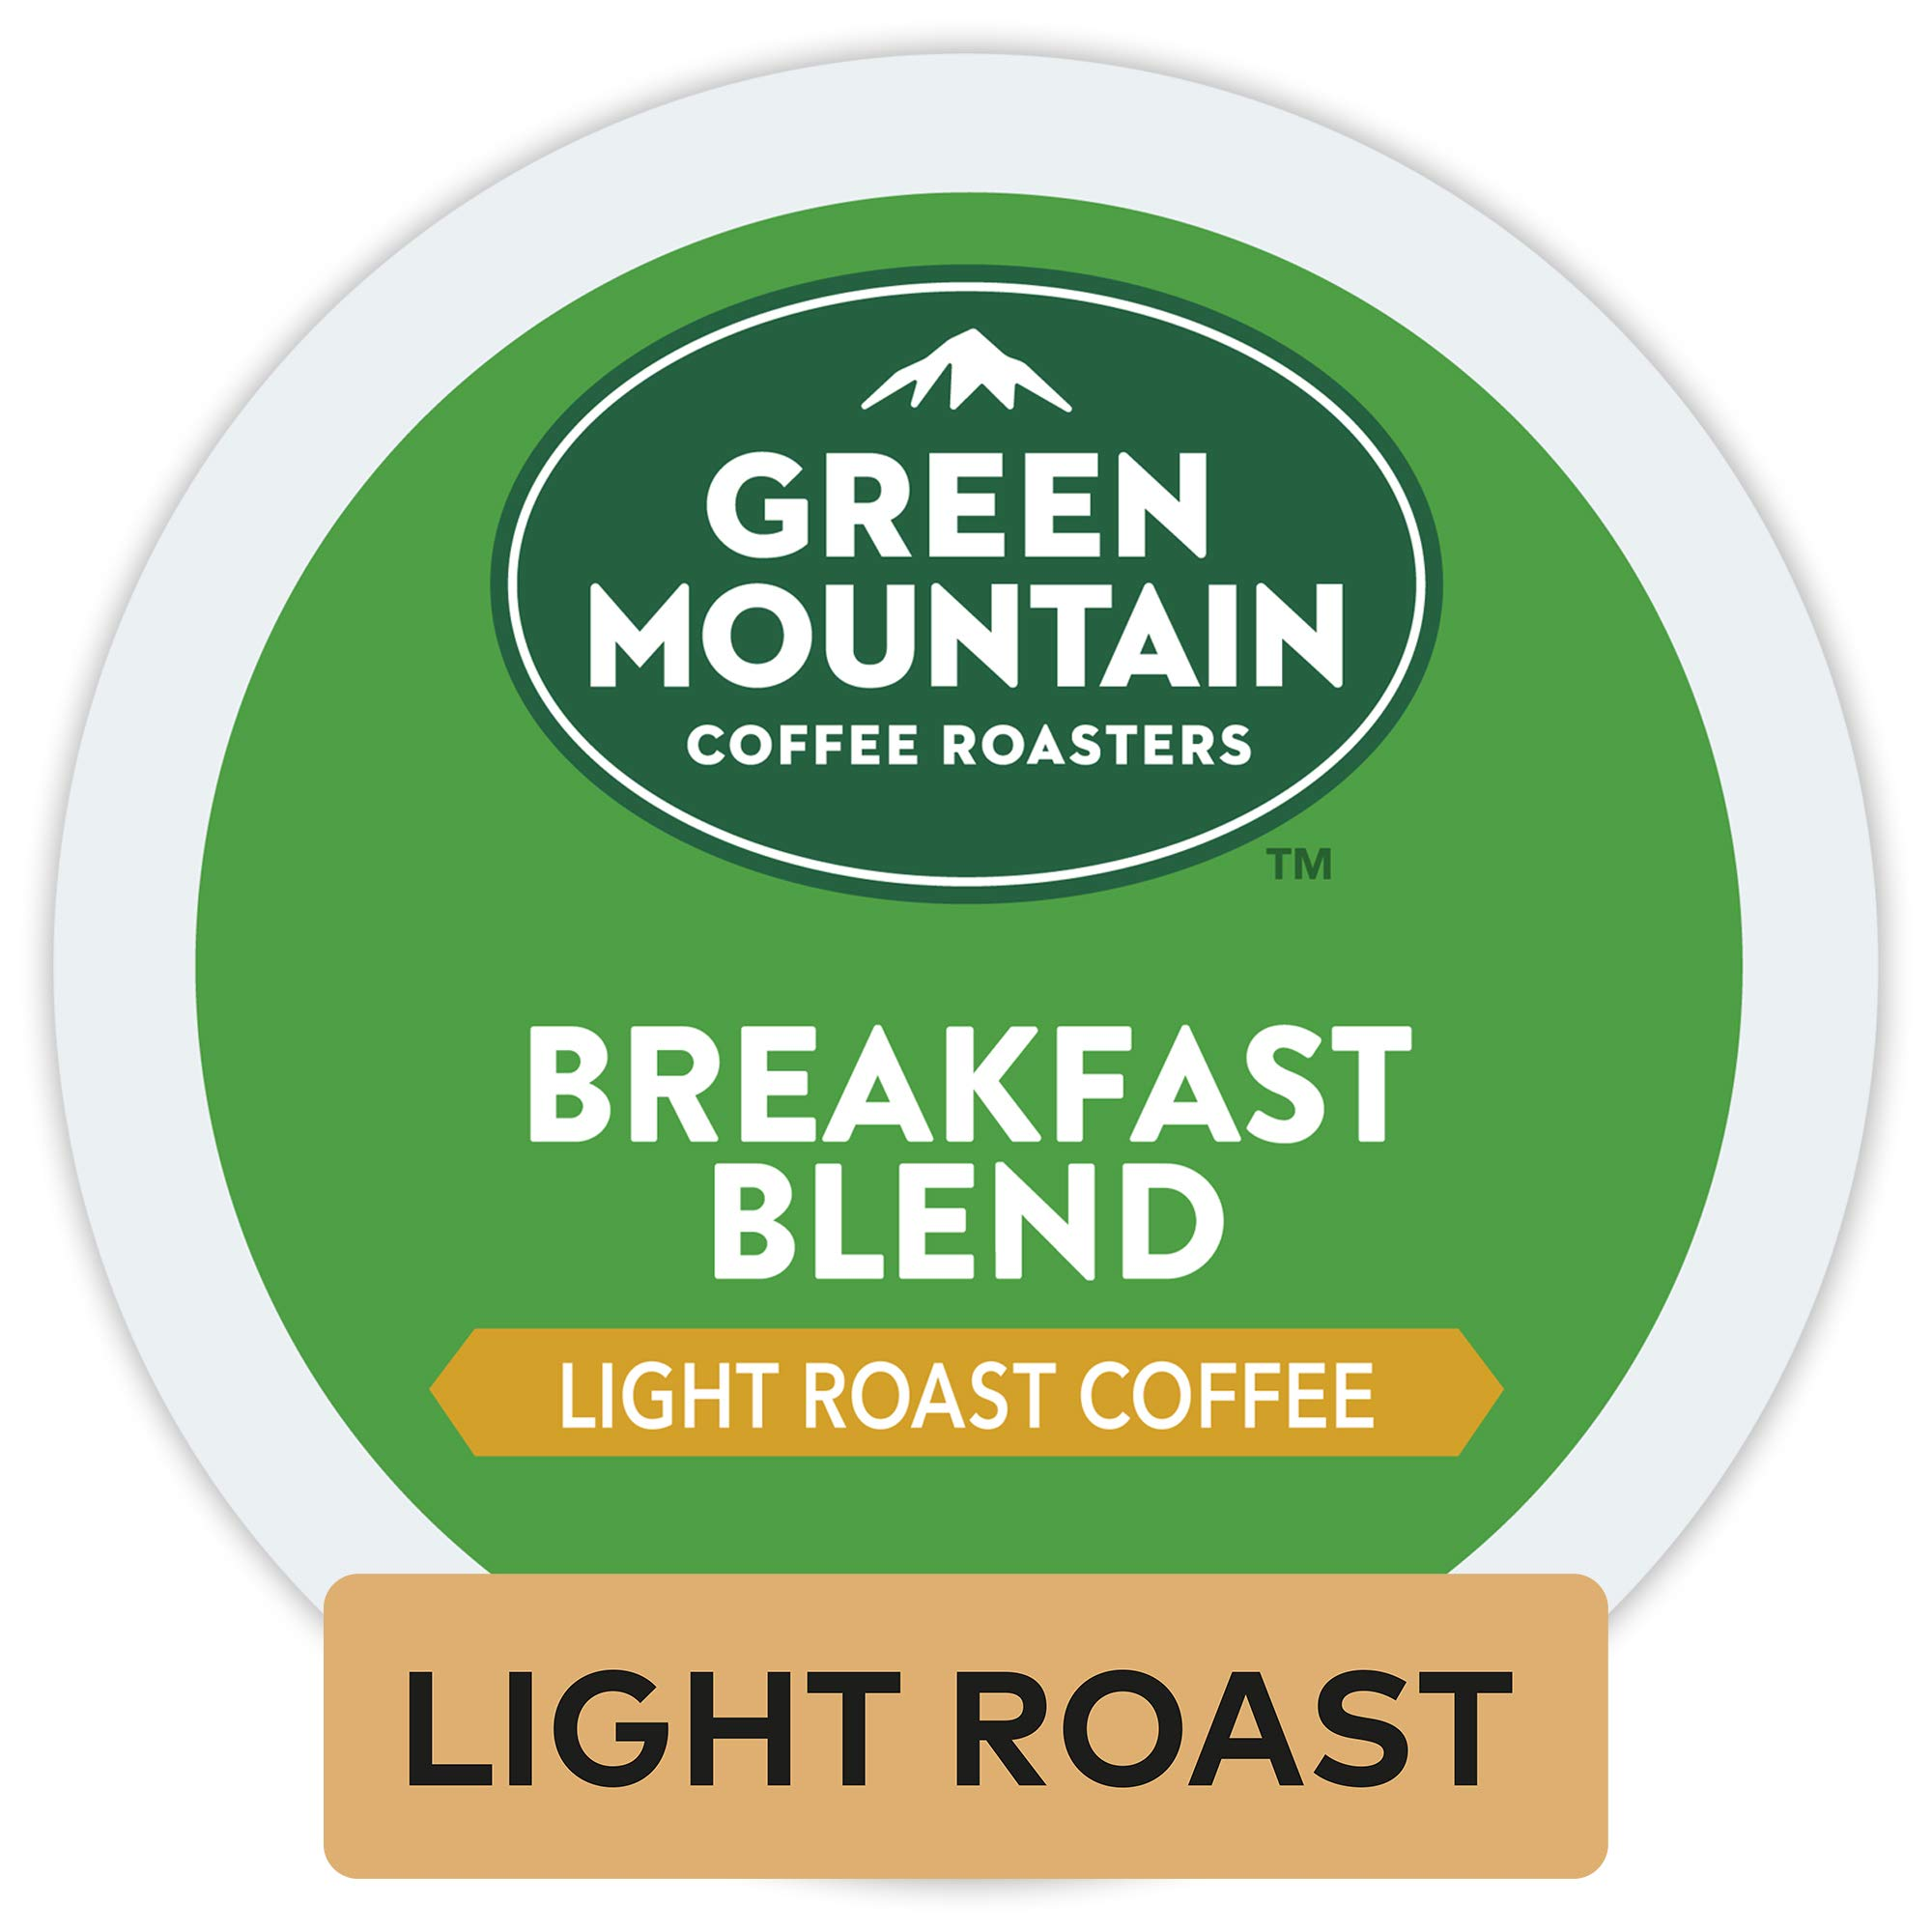 Green Mountain Coffee Roasters Breakfast Blend, Single Serve Coffee K-Cup Pod, Light Roast, 32 by Green Mountain Coffee Roasters